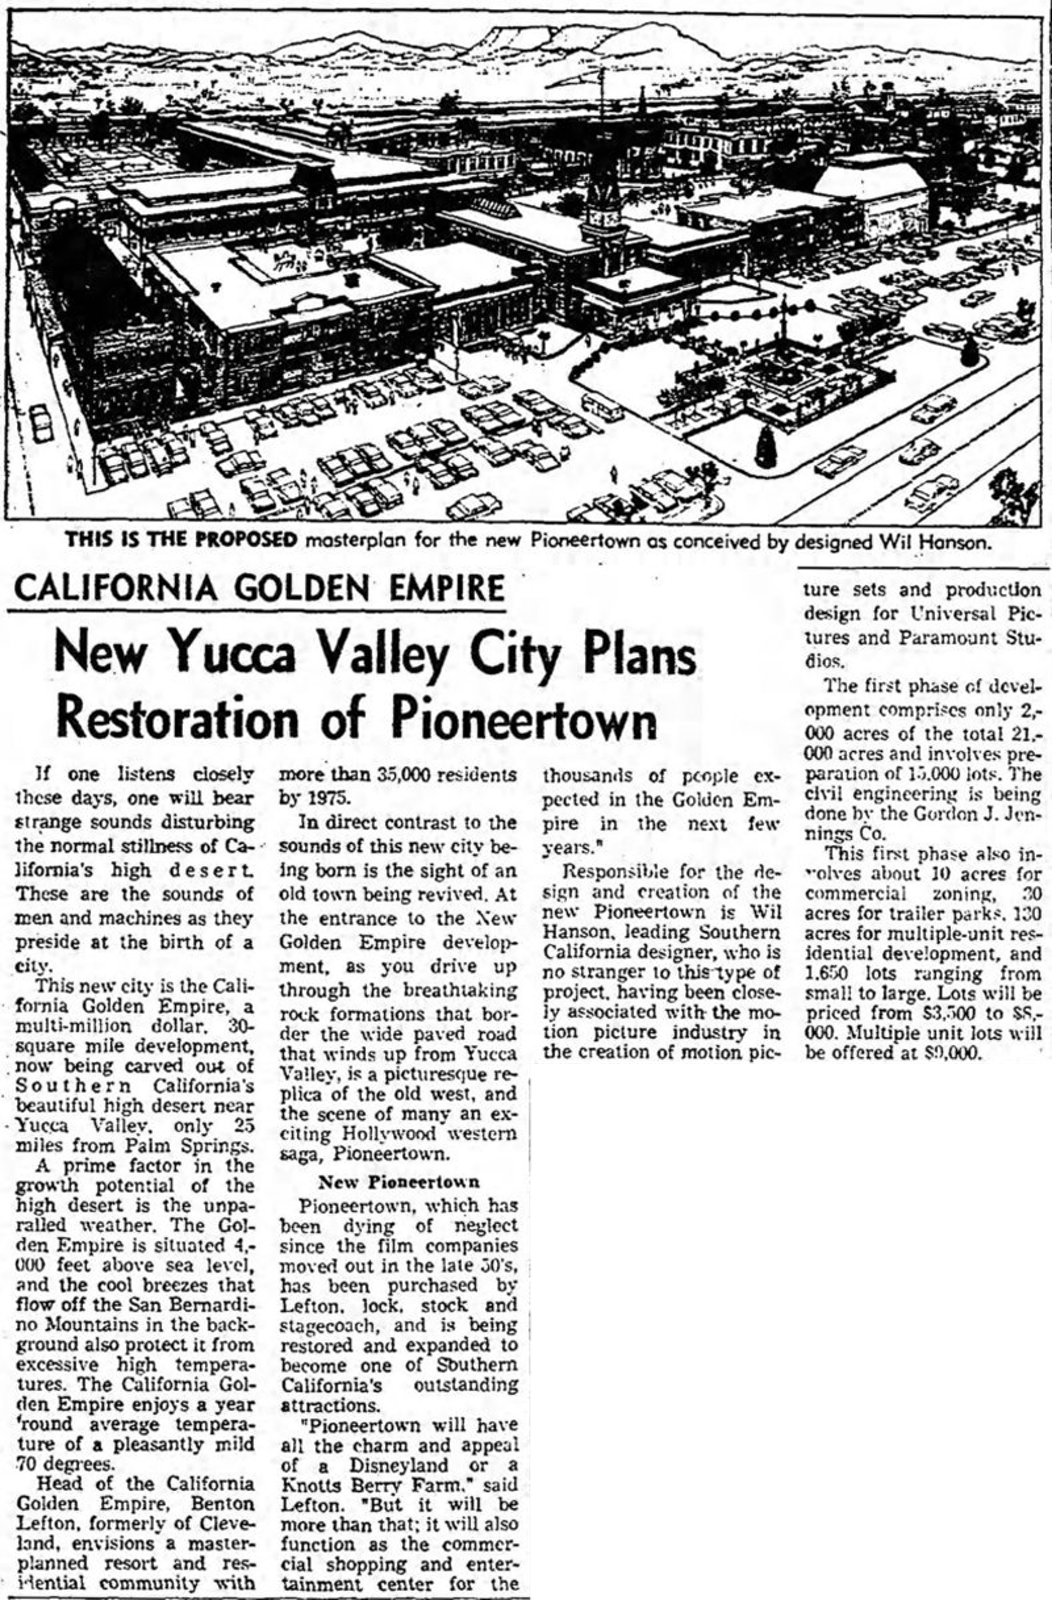 Jan. 26, 1966 - The Los Angeles Times article clipping